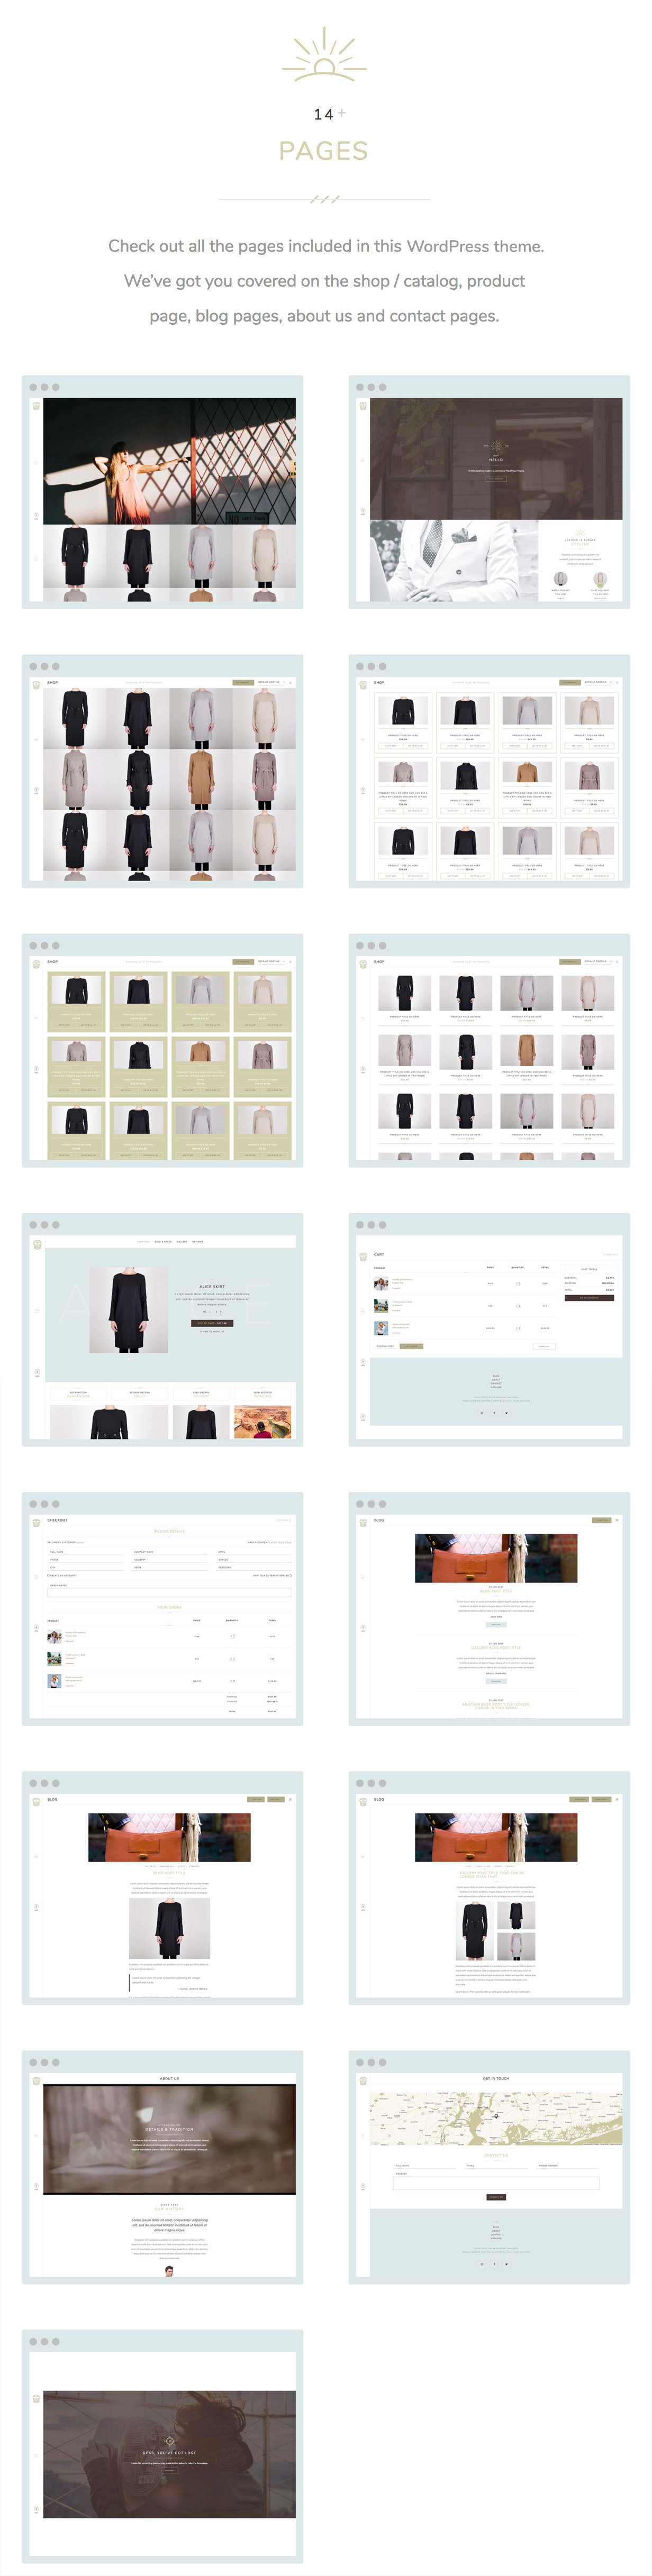 TS - Fashion & Apparel Store WooCommerce WordPress Theme